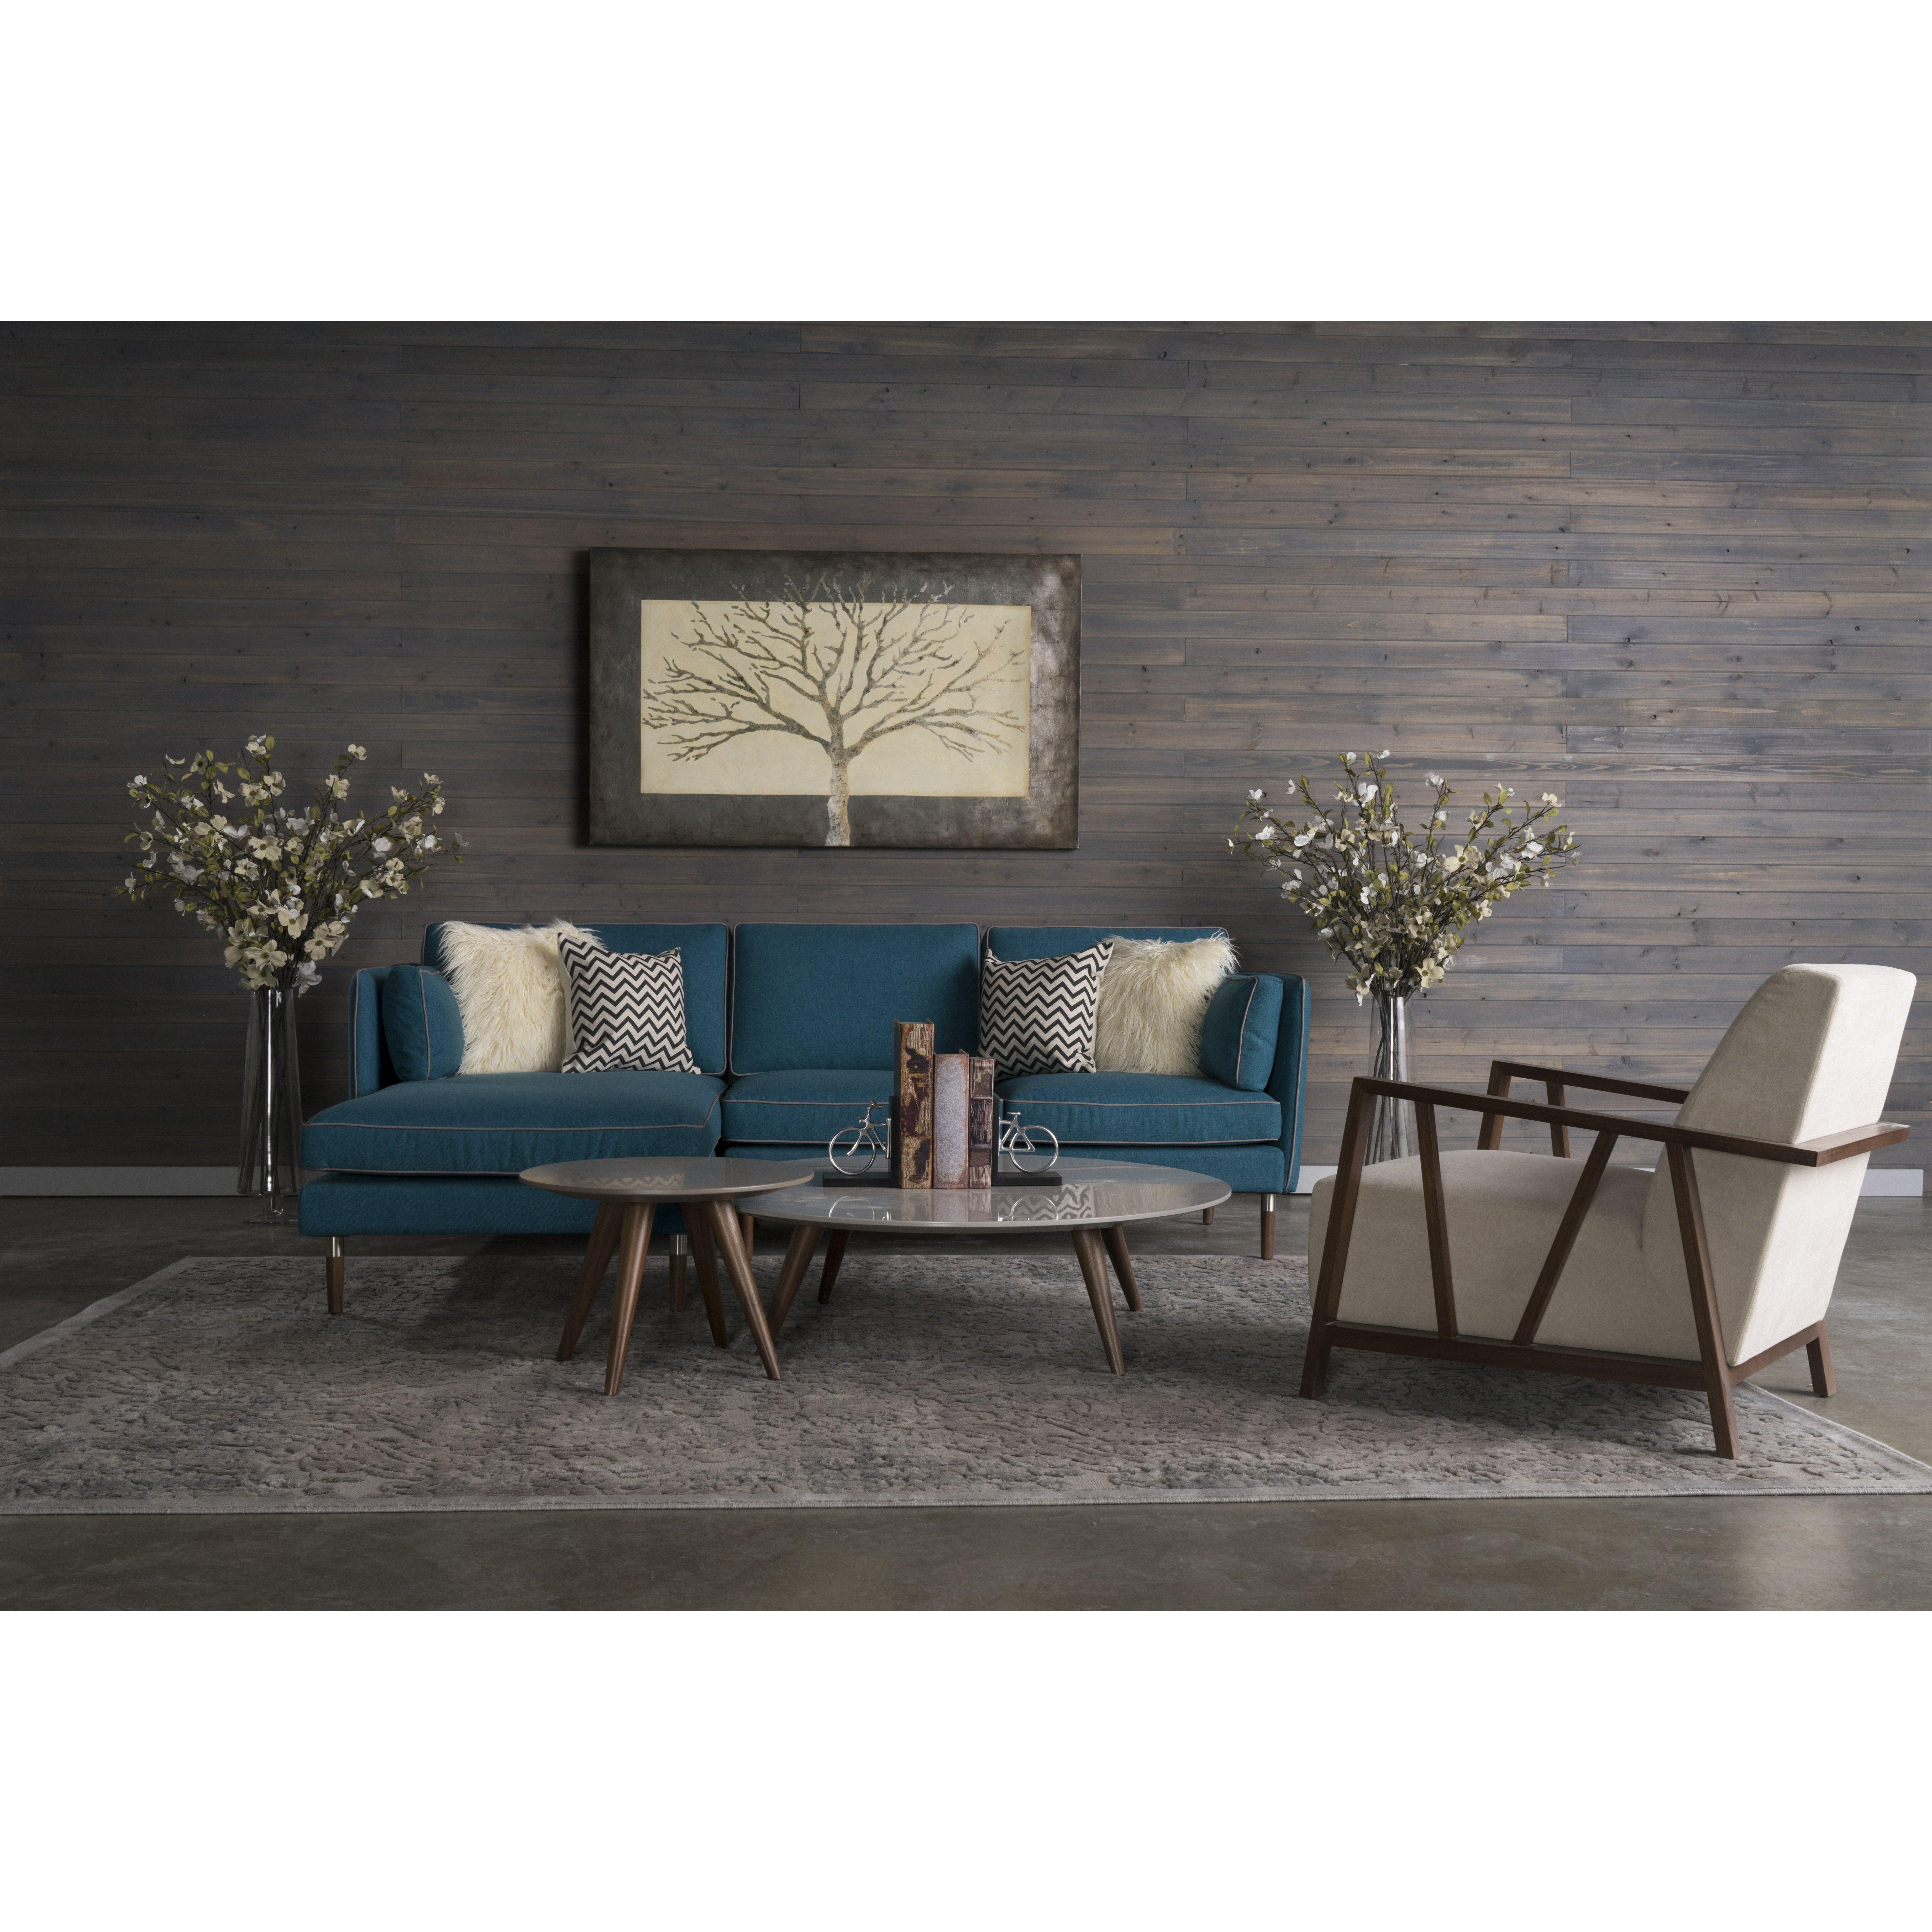 Corrigan studio shelburne 4 piece living room set